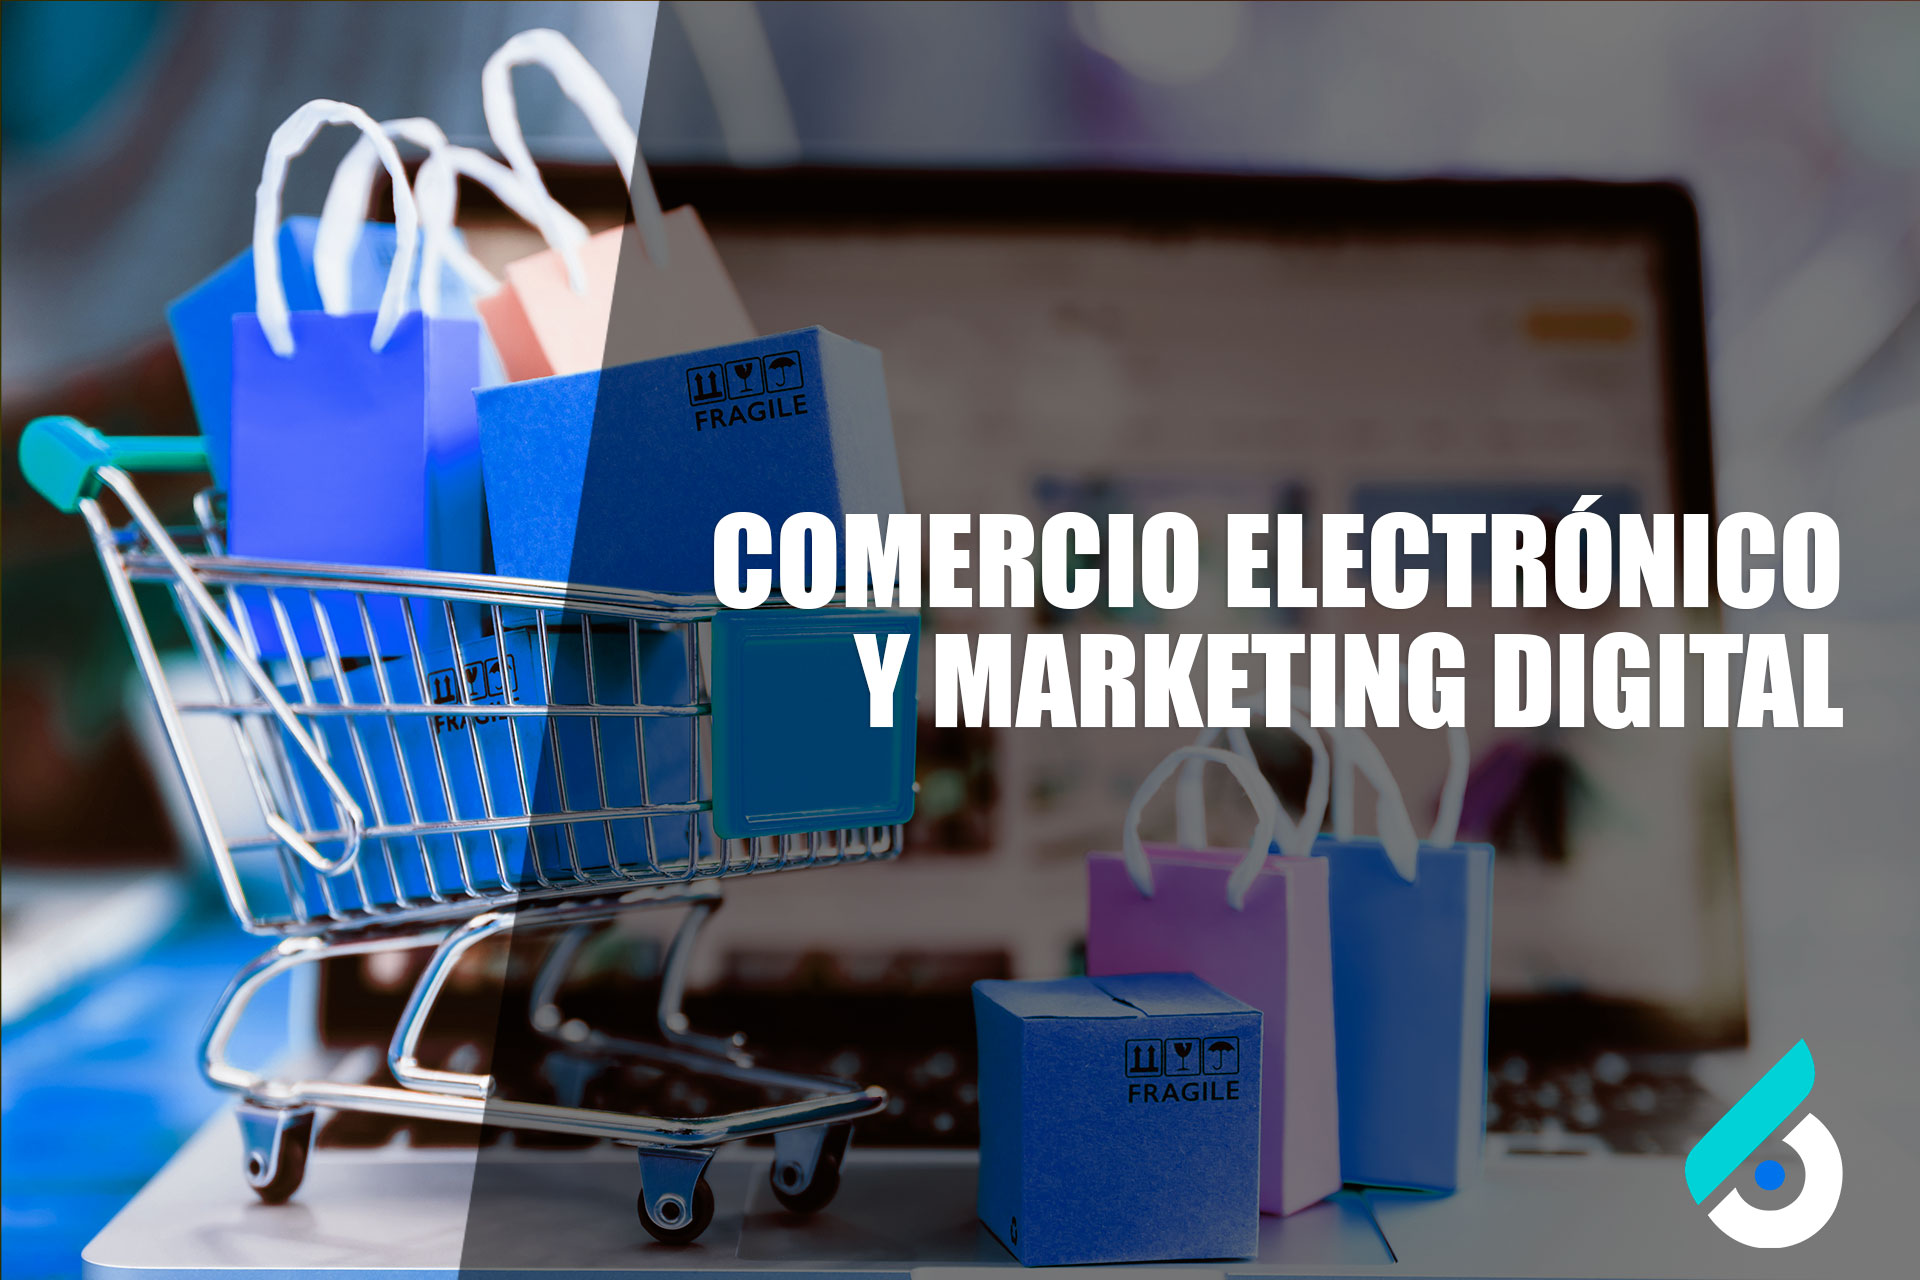 DMIPE-20-01-13-0460-1 | Comercio Electrónico y Marketing Digital